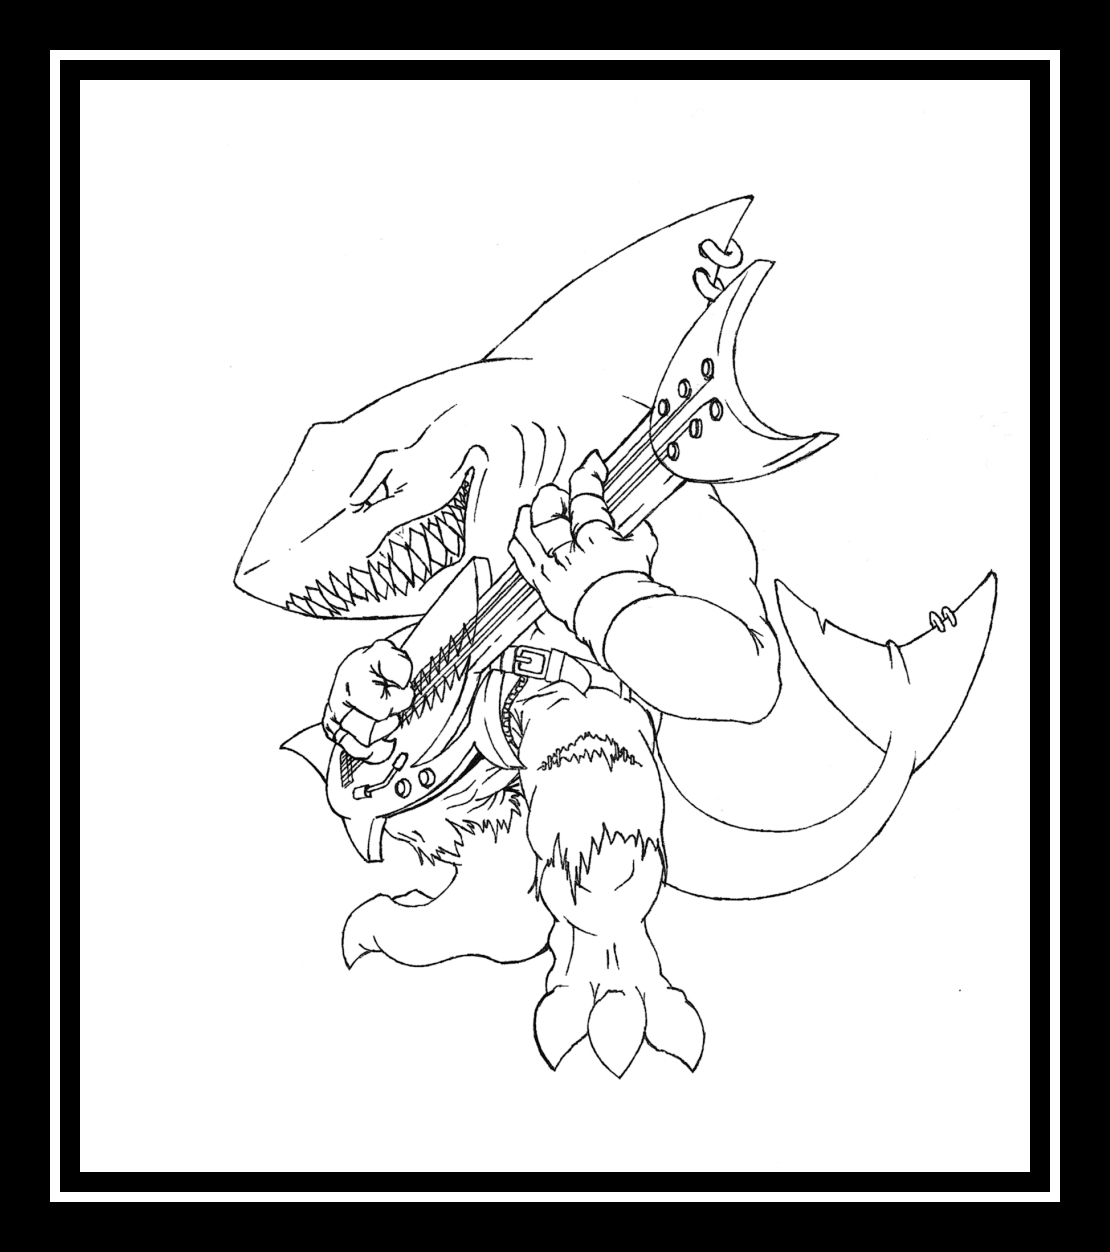 guitar hero coloring pages - photo#1